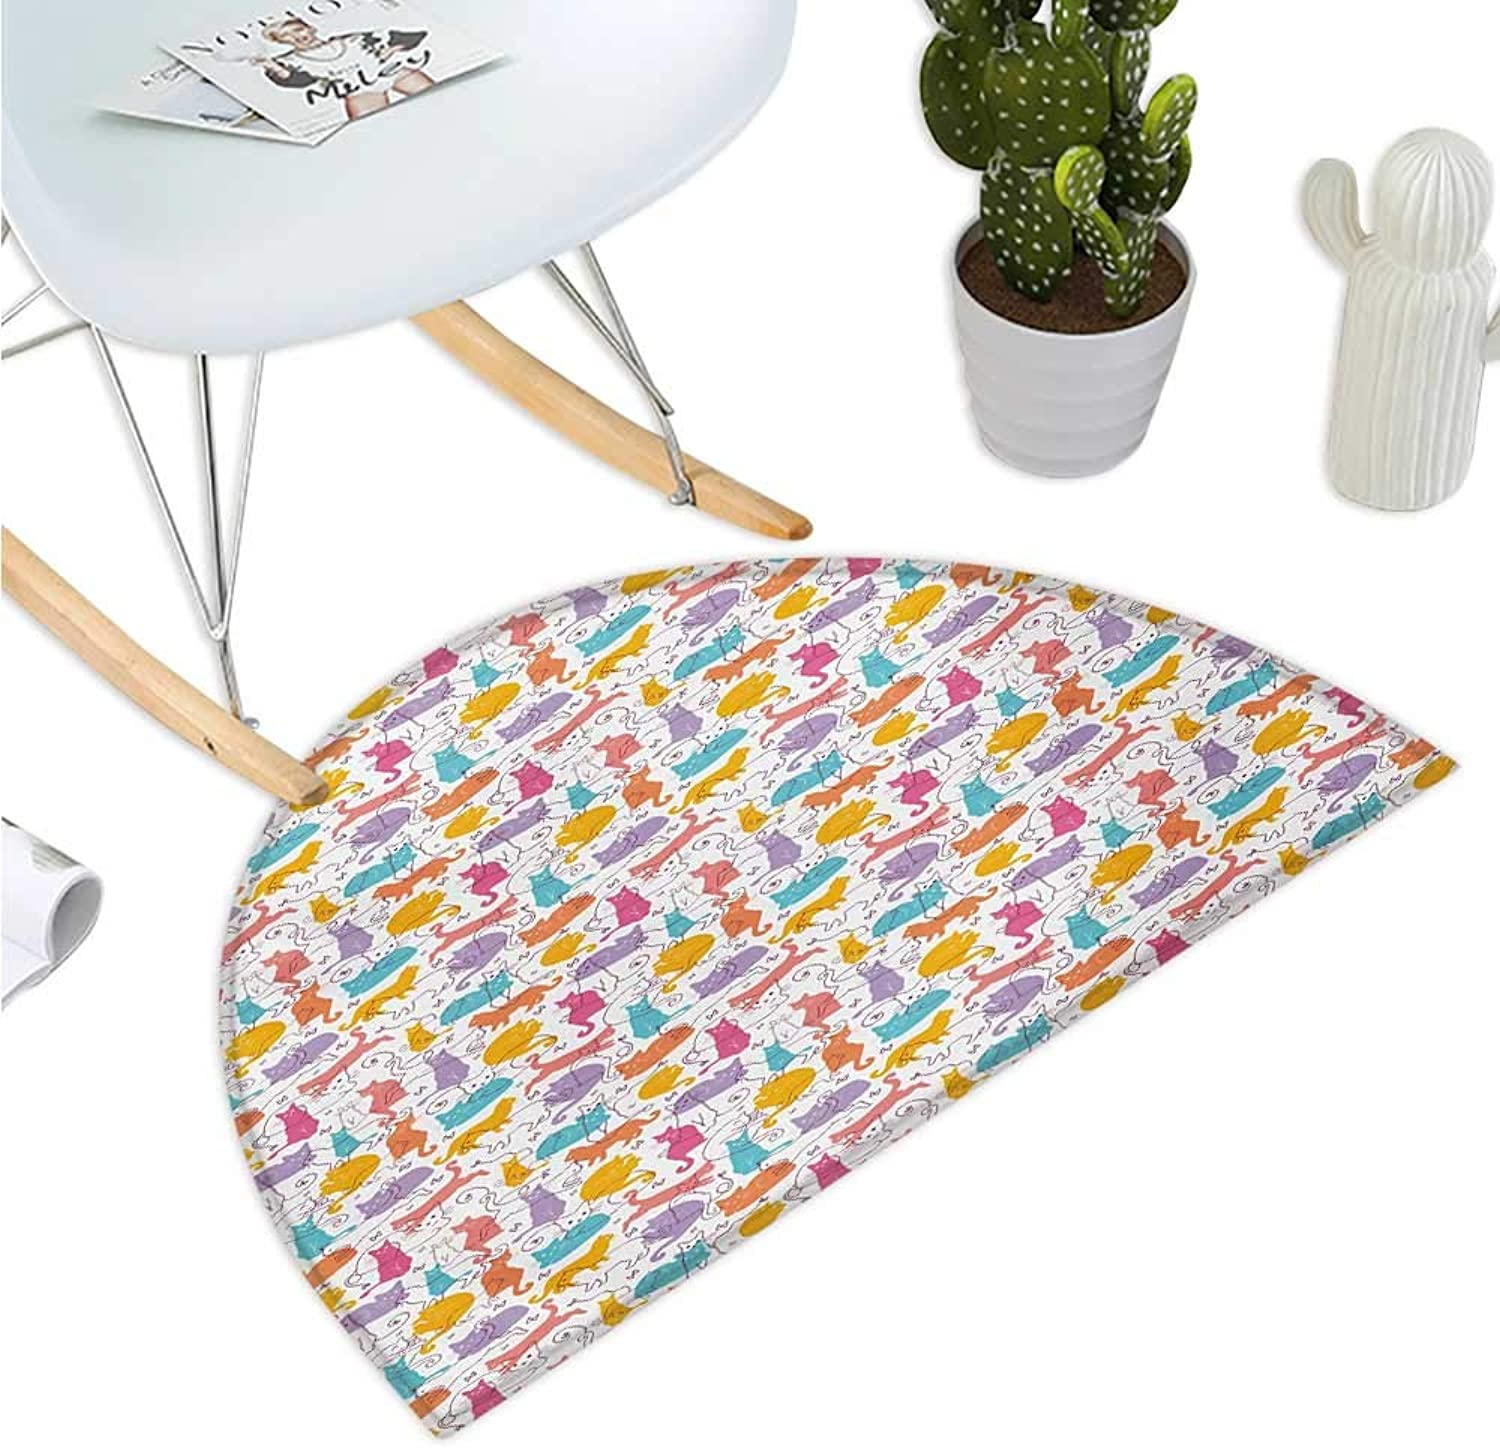 Cat Semicircular Cushion colorful Cat Figures Silhouettes and Outlines Bow Ties Sleeping Playing Happy Joyful Bathroom Mat H 39.3  xD 59  Multicolor